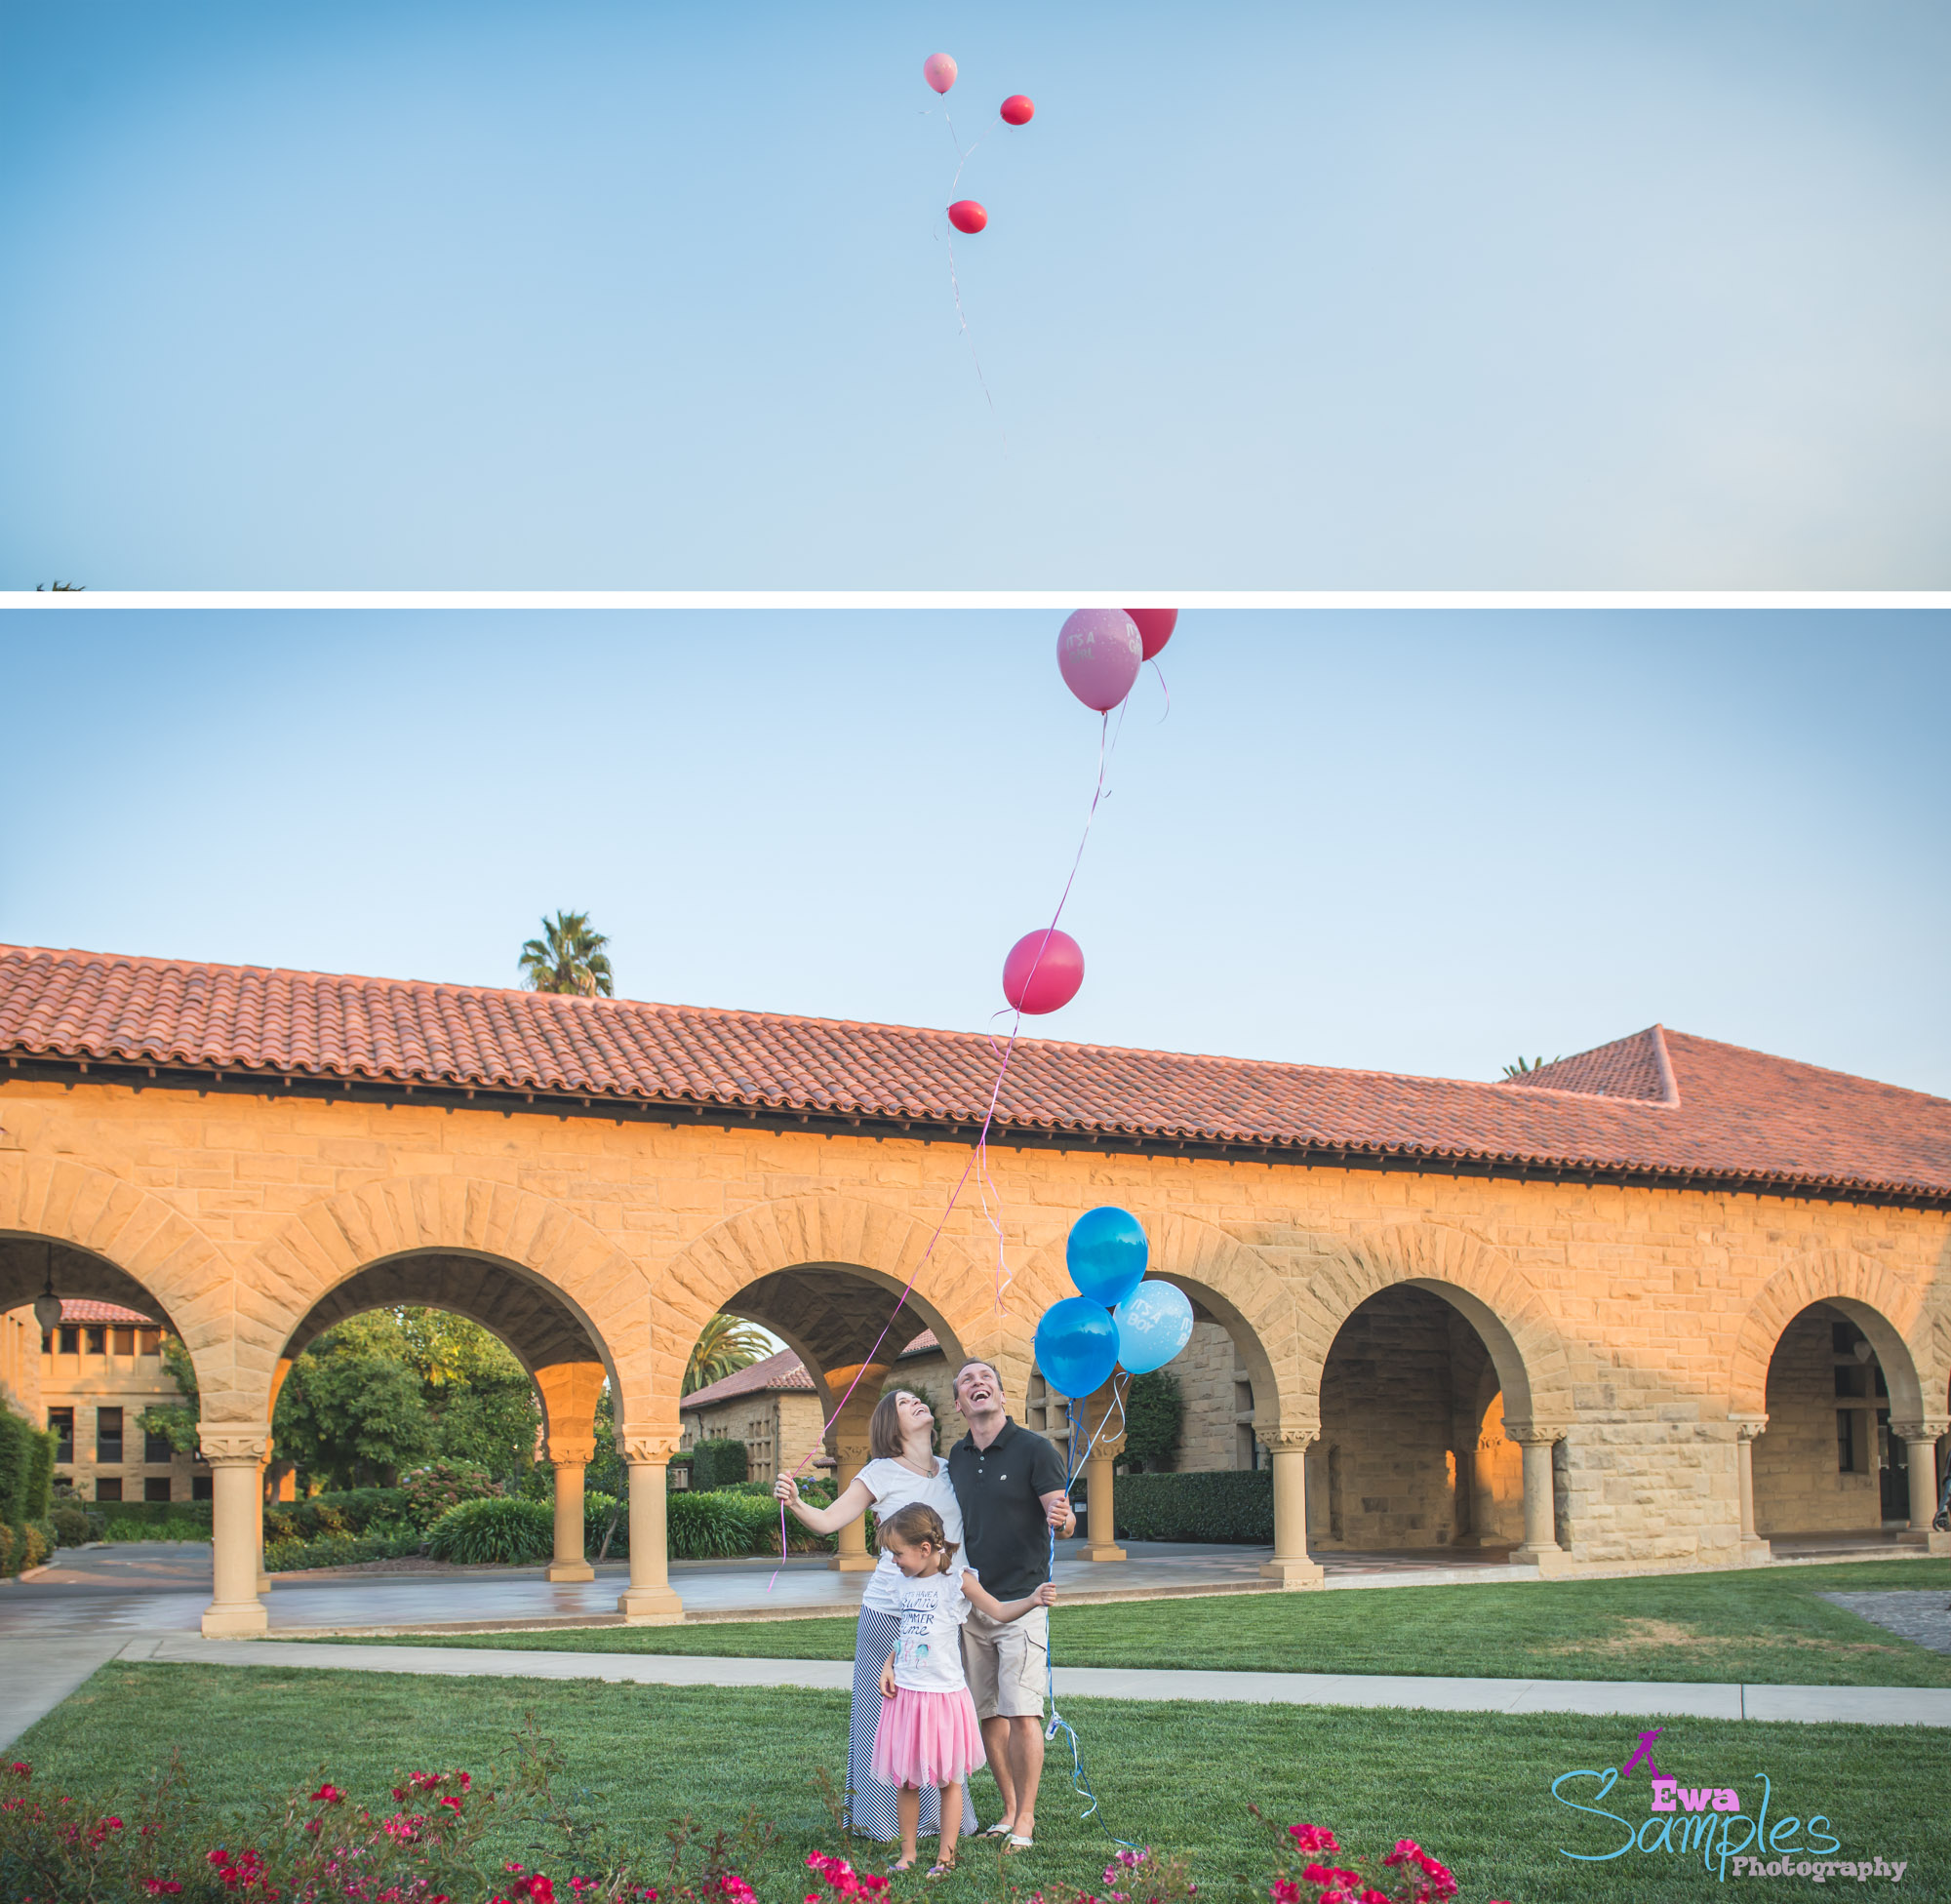 maternity_photographer_stanford_photographer_Palo_alto_ewa_samples-2